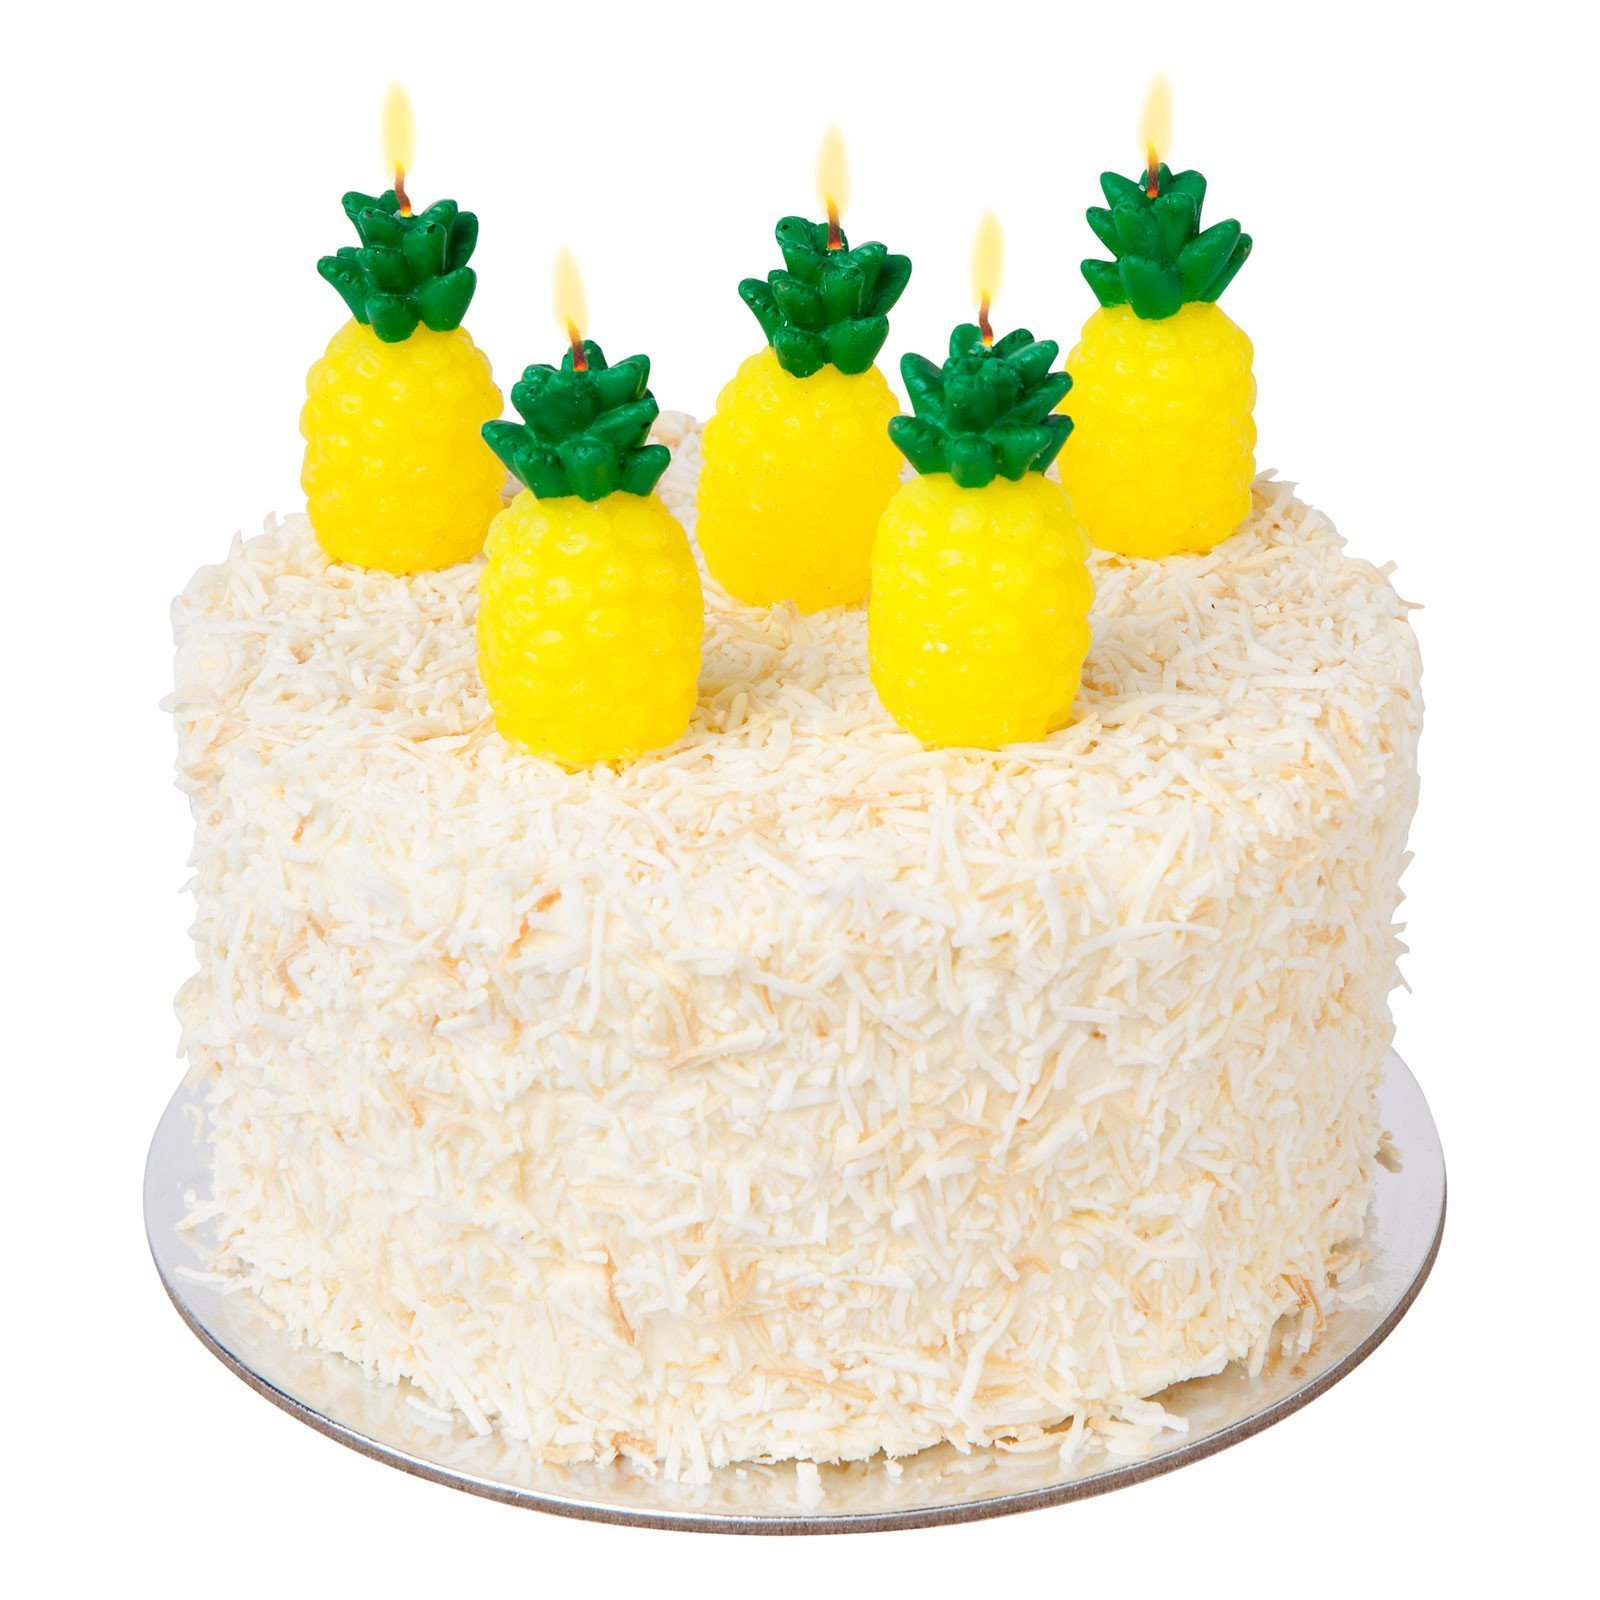 SunnyLIFE Themed Cake Candles in Animal, Plant, and Food Shapes, Set of 5 - Pineapple by SunnyLIFE (Image #2)